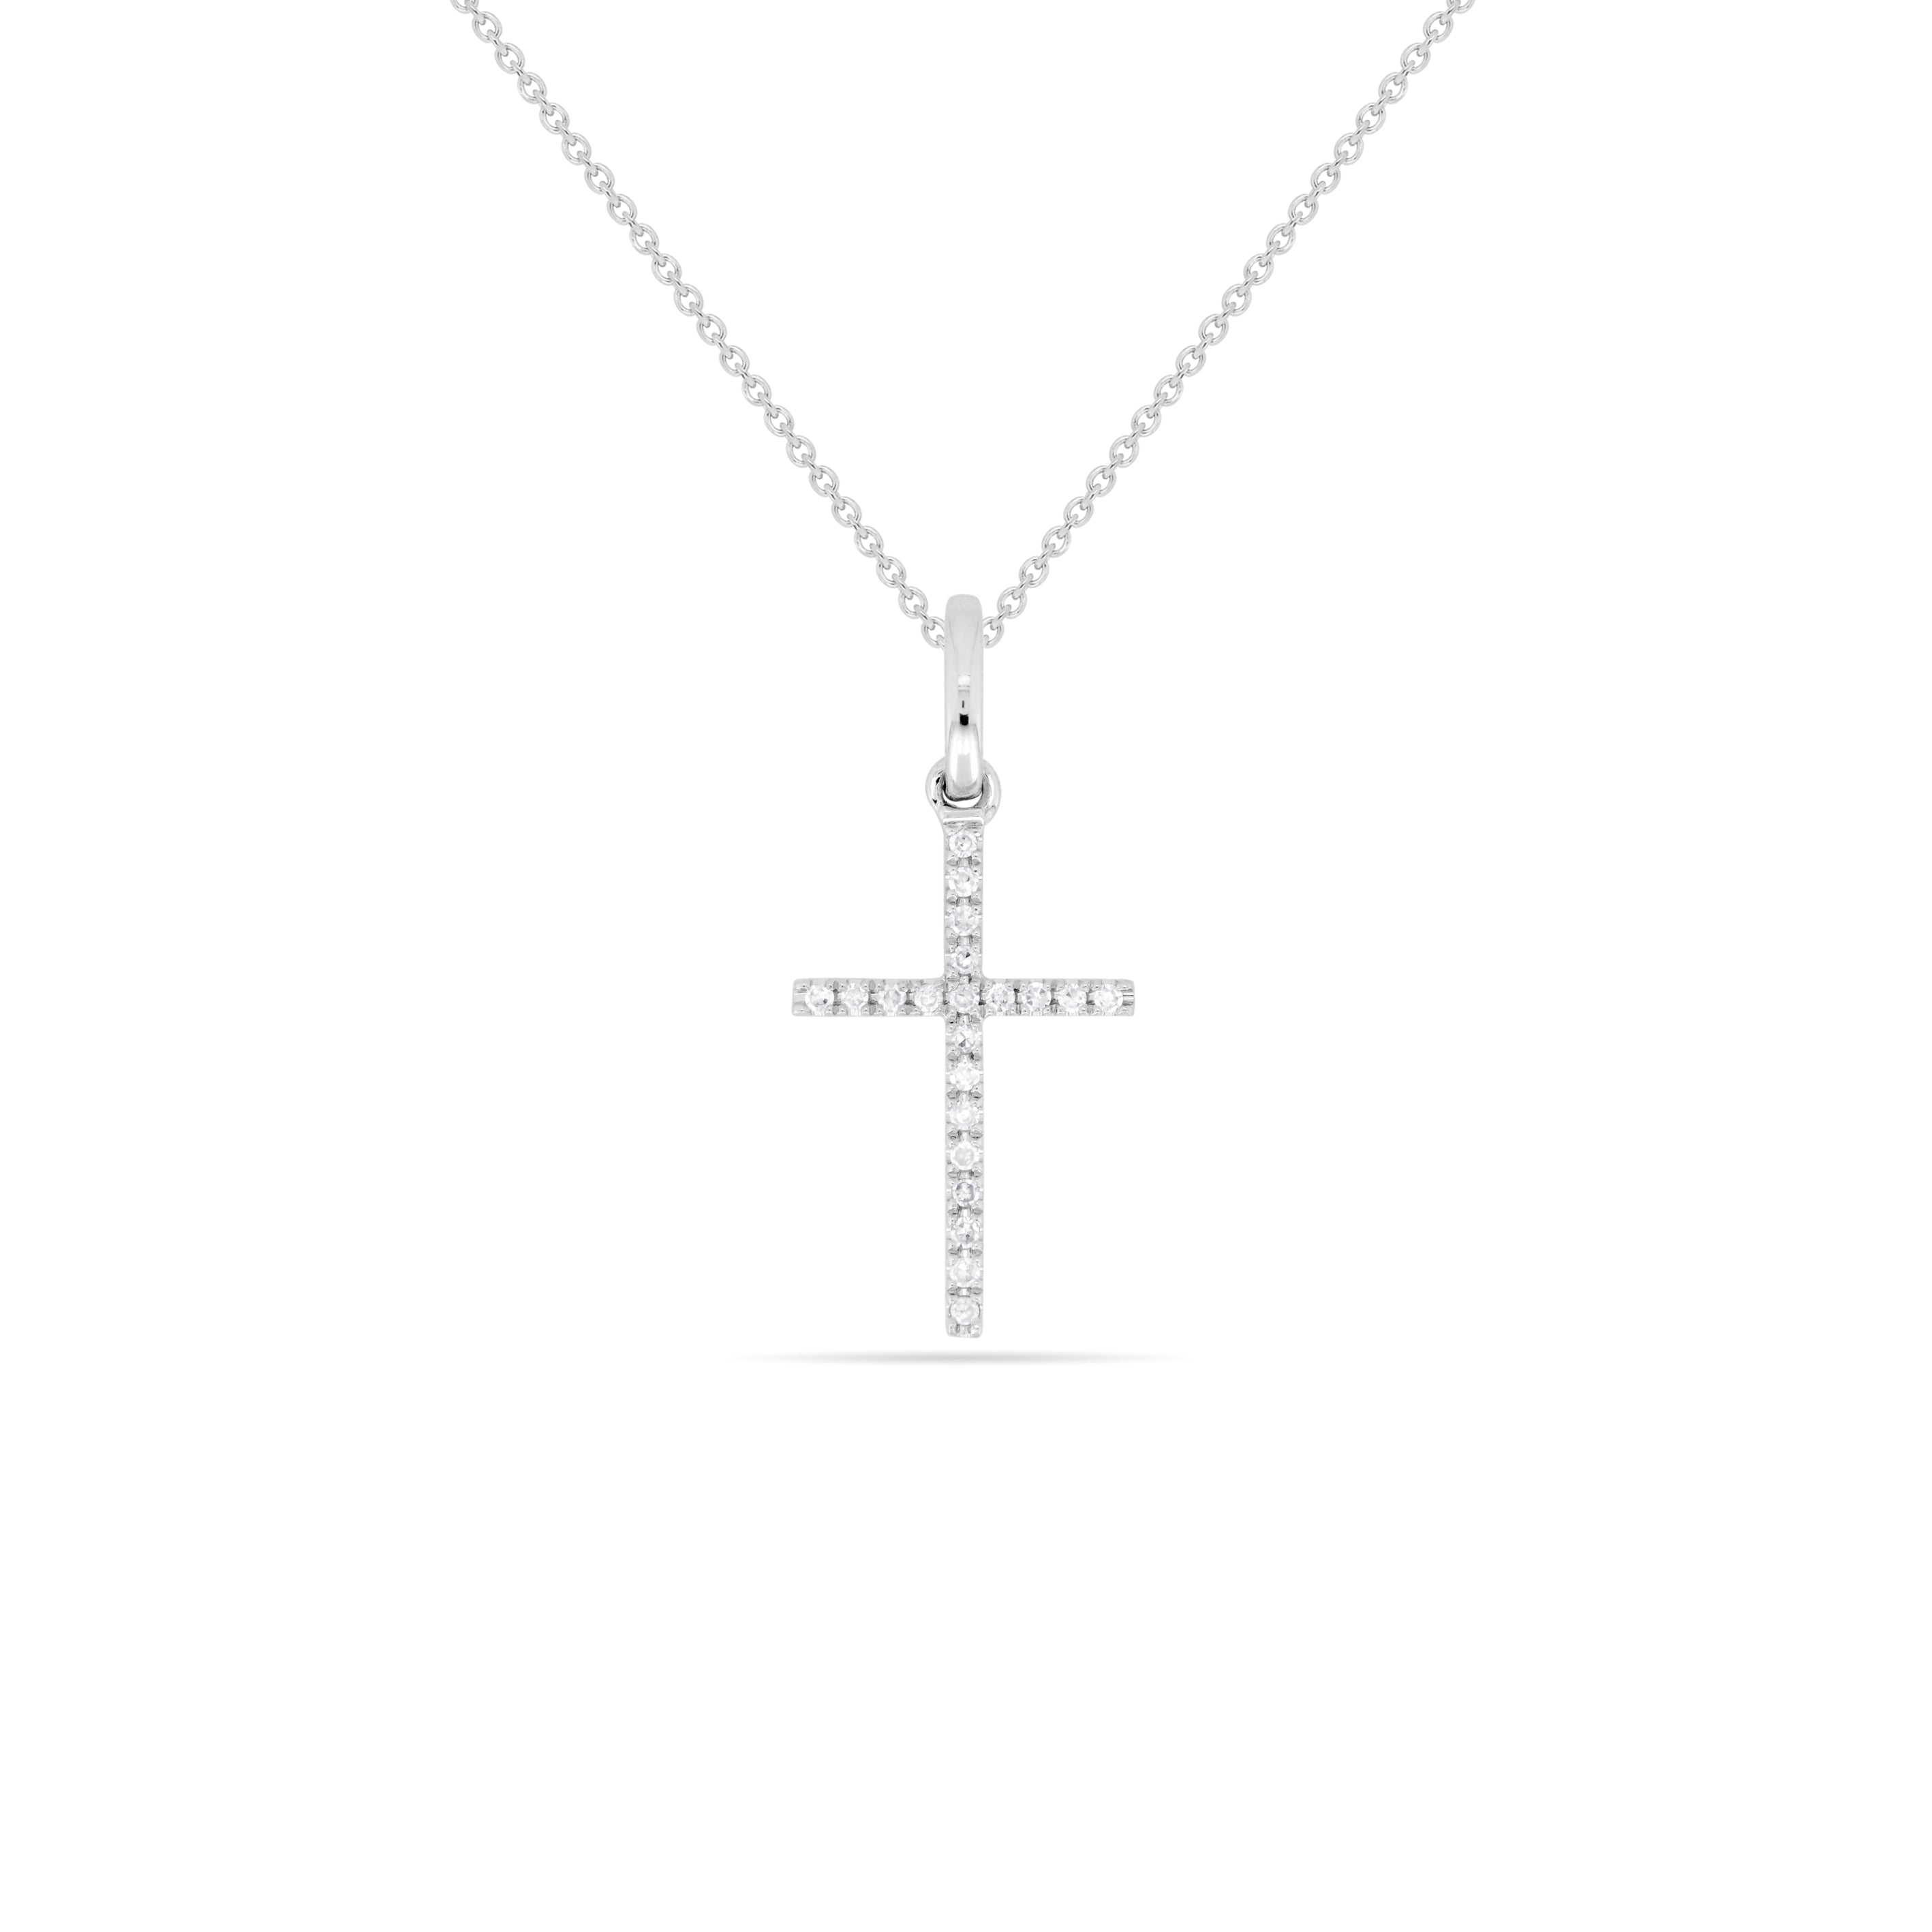 LARGE Cross Necklace , Necklaces - Fine Jewelry, RoCHIC, RoCHIC Designer Fine Jewelry